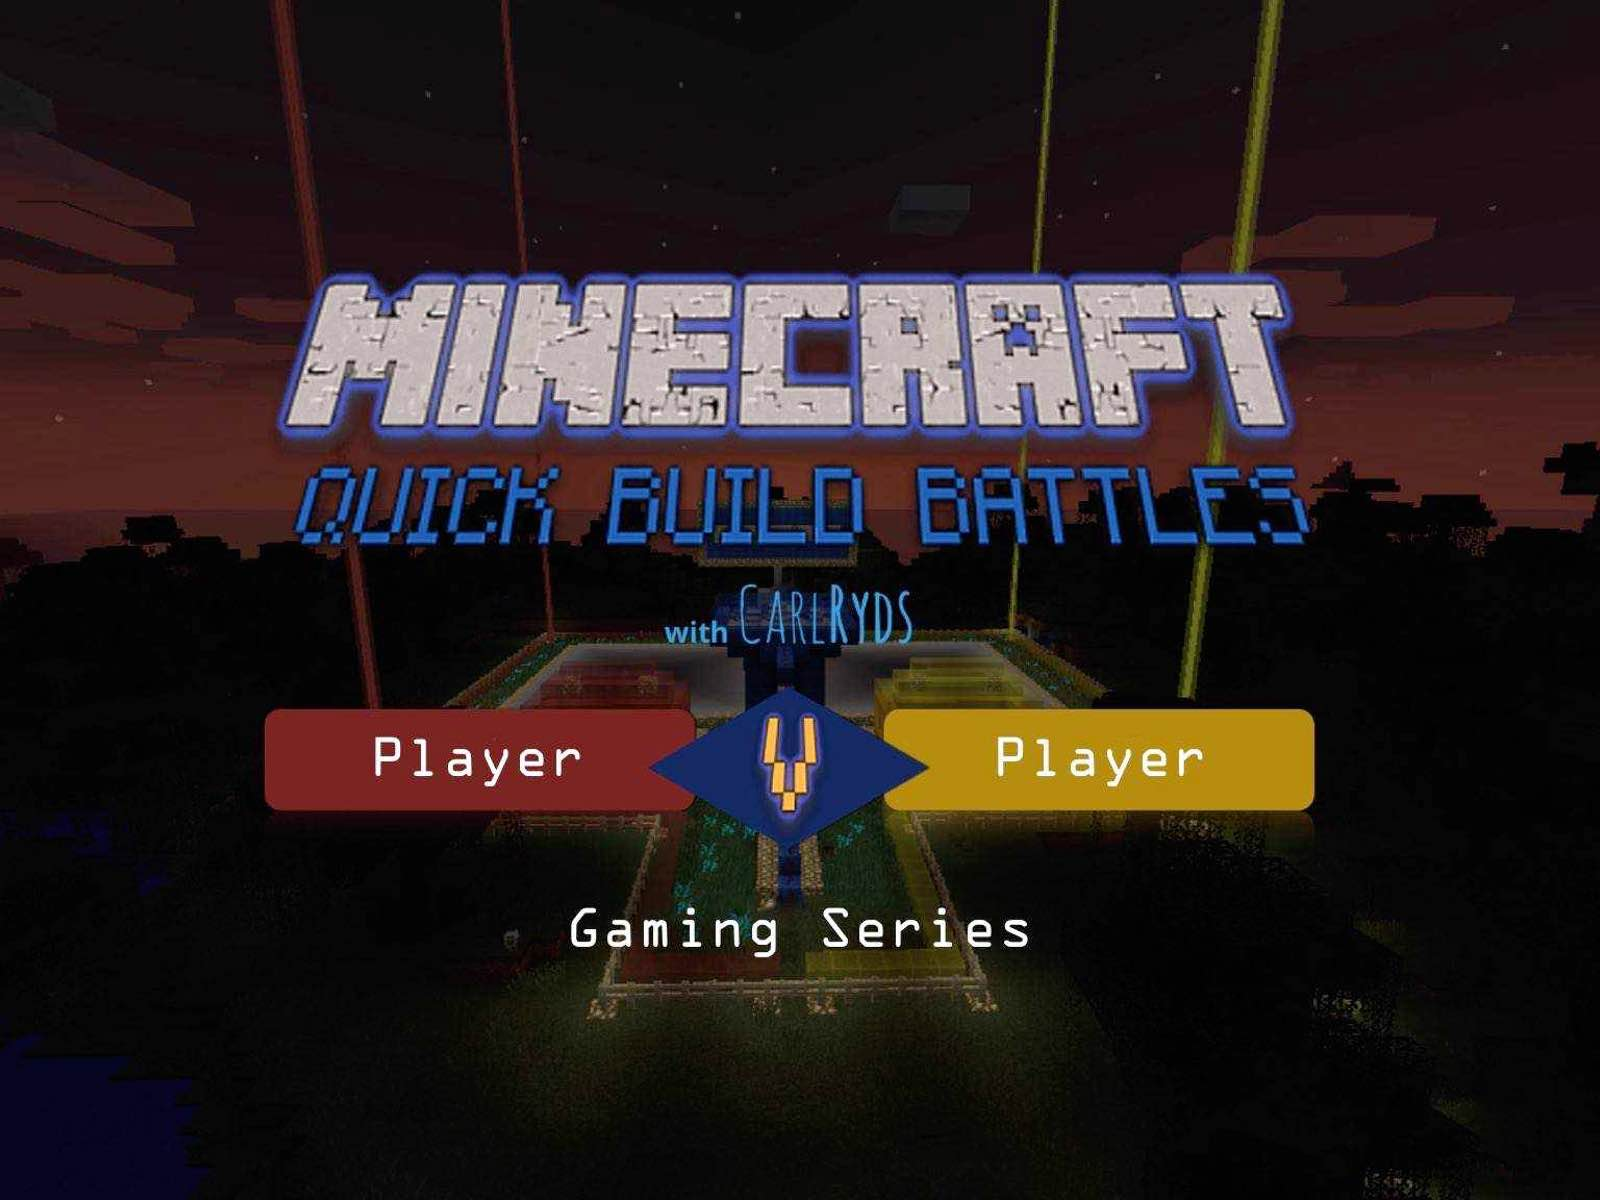 Minecraft Quick Build Battles